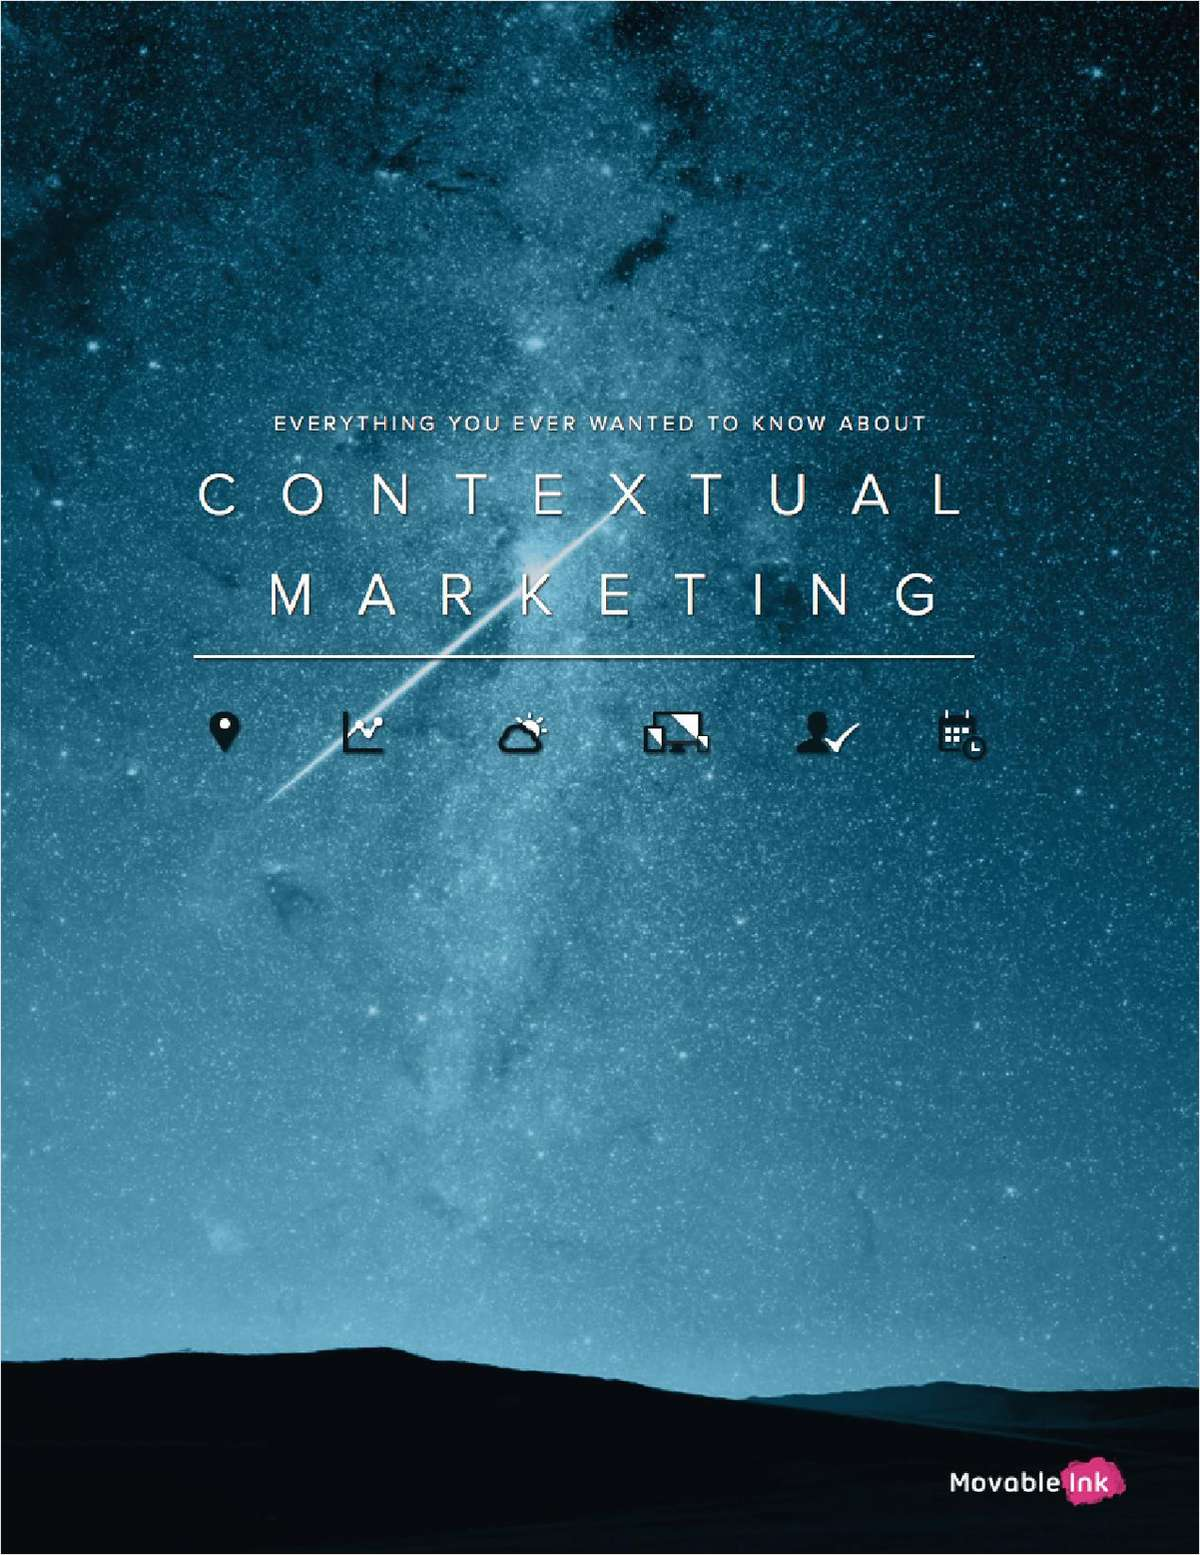 Everything You Ever Wanted to Know About Contextual Marketing